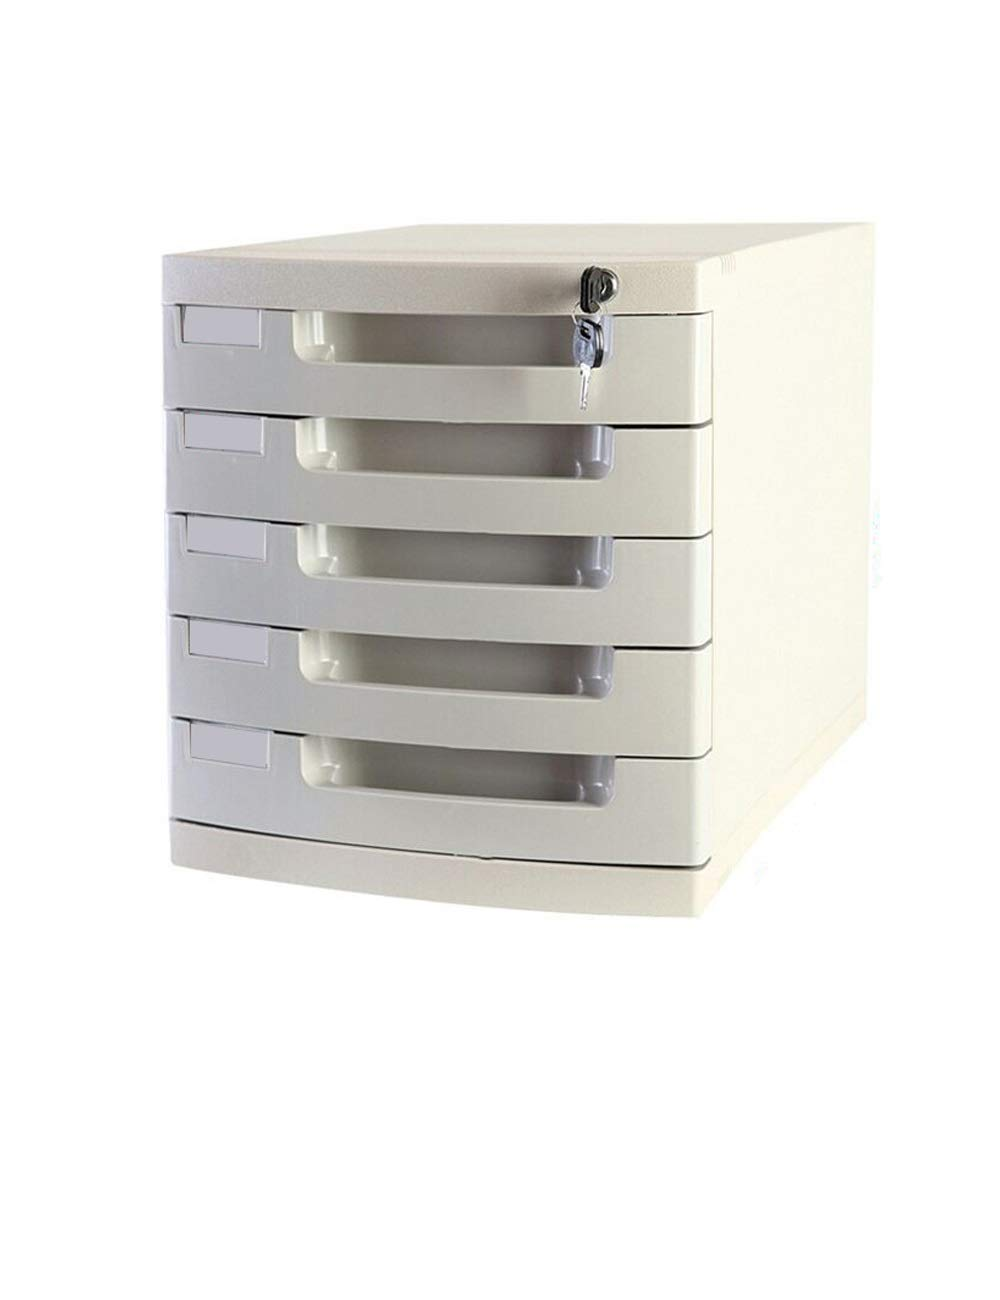 File Cabinet with Lock and Drawer Moving Multi-Function Cabinet 5 Drawers Color: Blue, Gray, Pink, Light Gray Office Desktop File Storage Cabinet Storage Filing cabinets (Color : D)